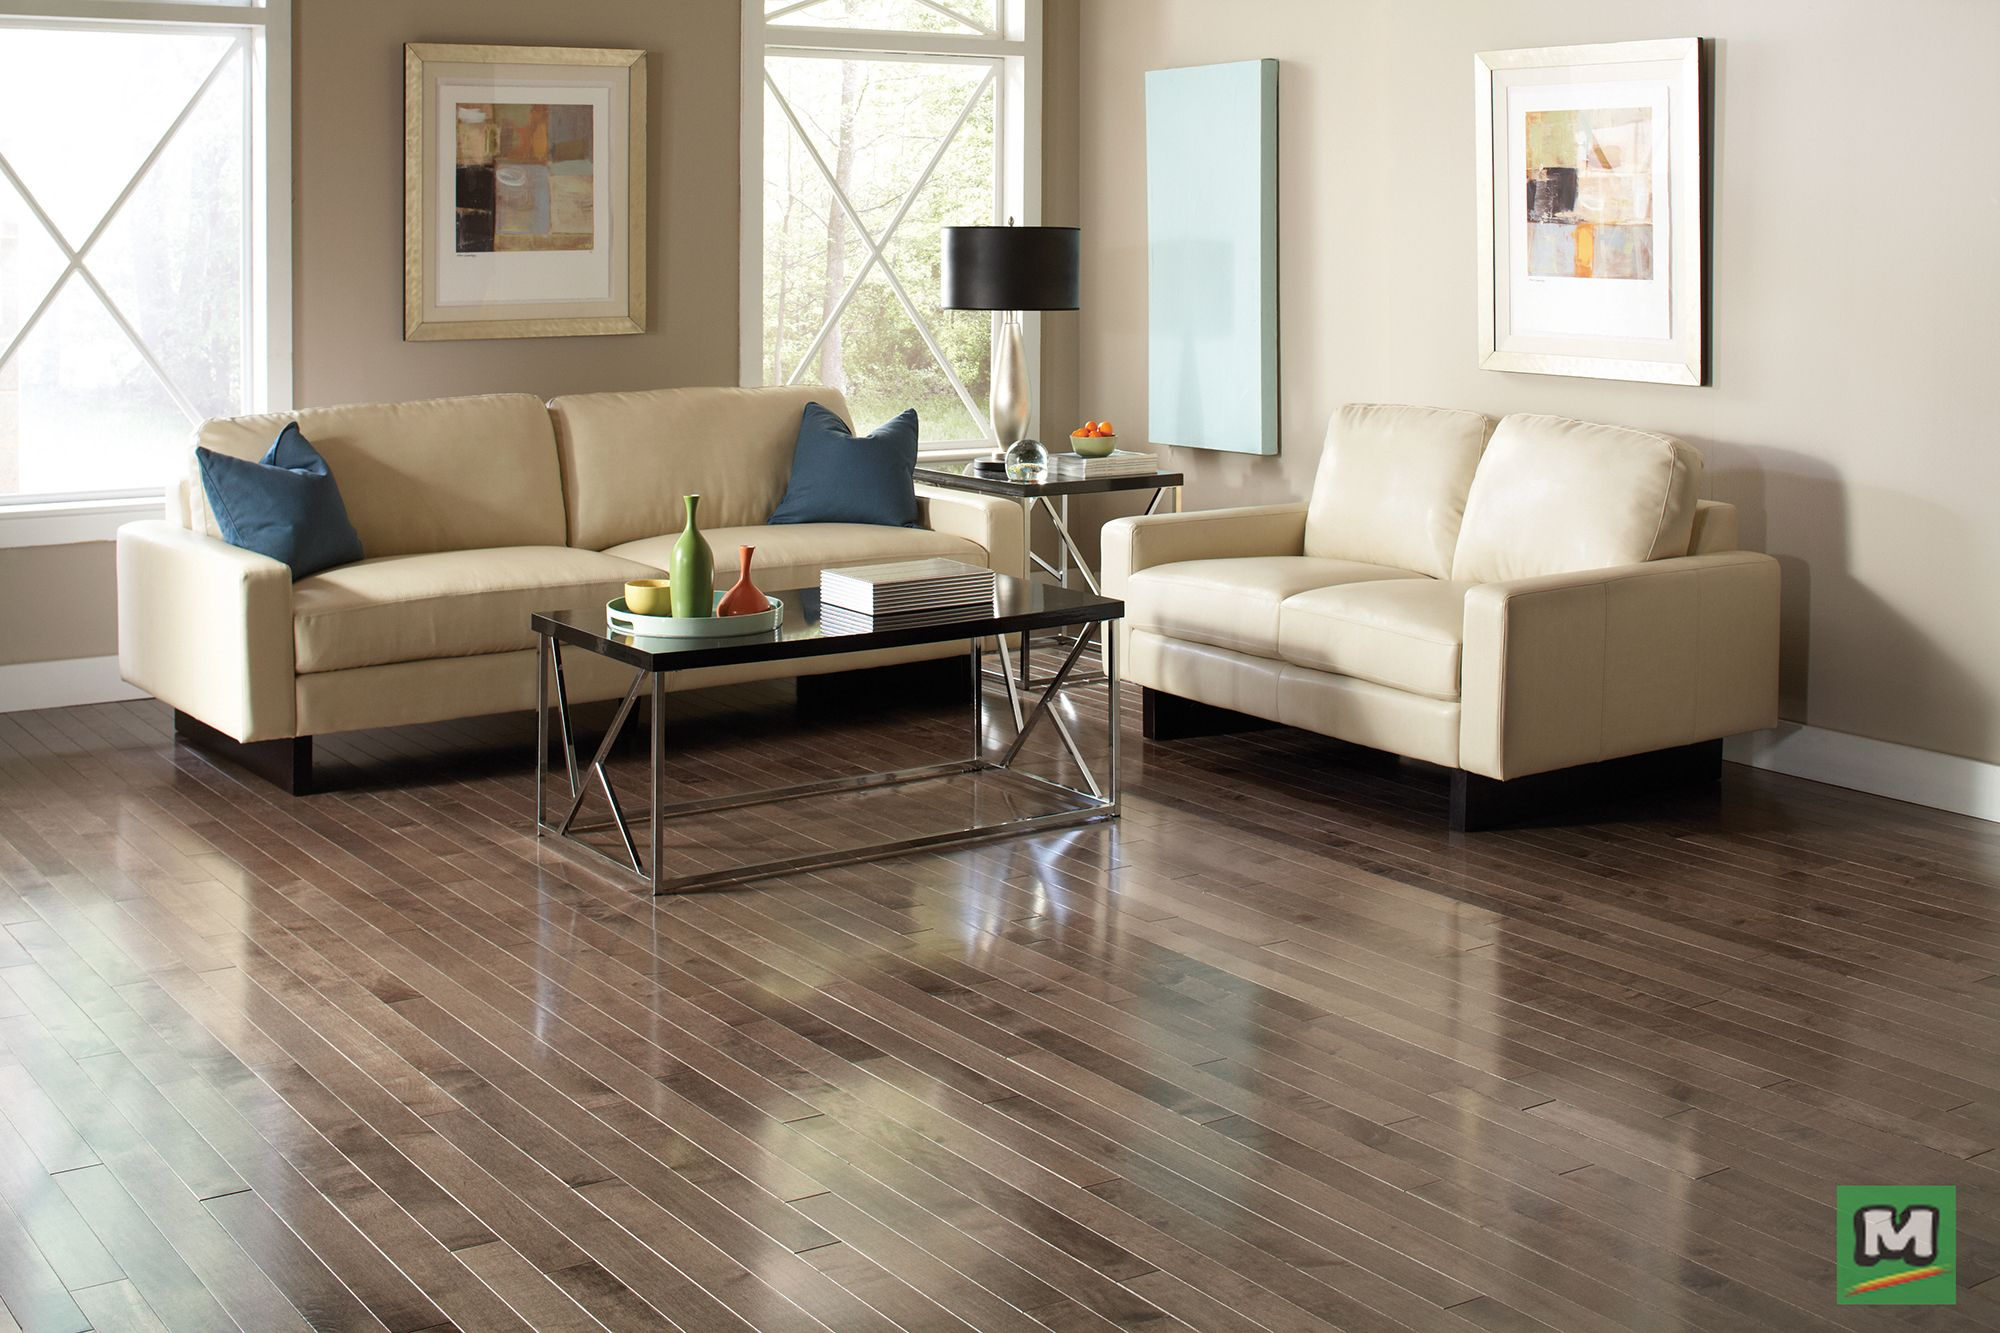 This 3/4inch Maple Misty Morning solid hardwood flooring